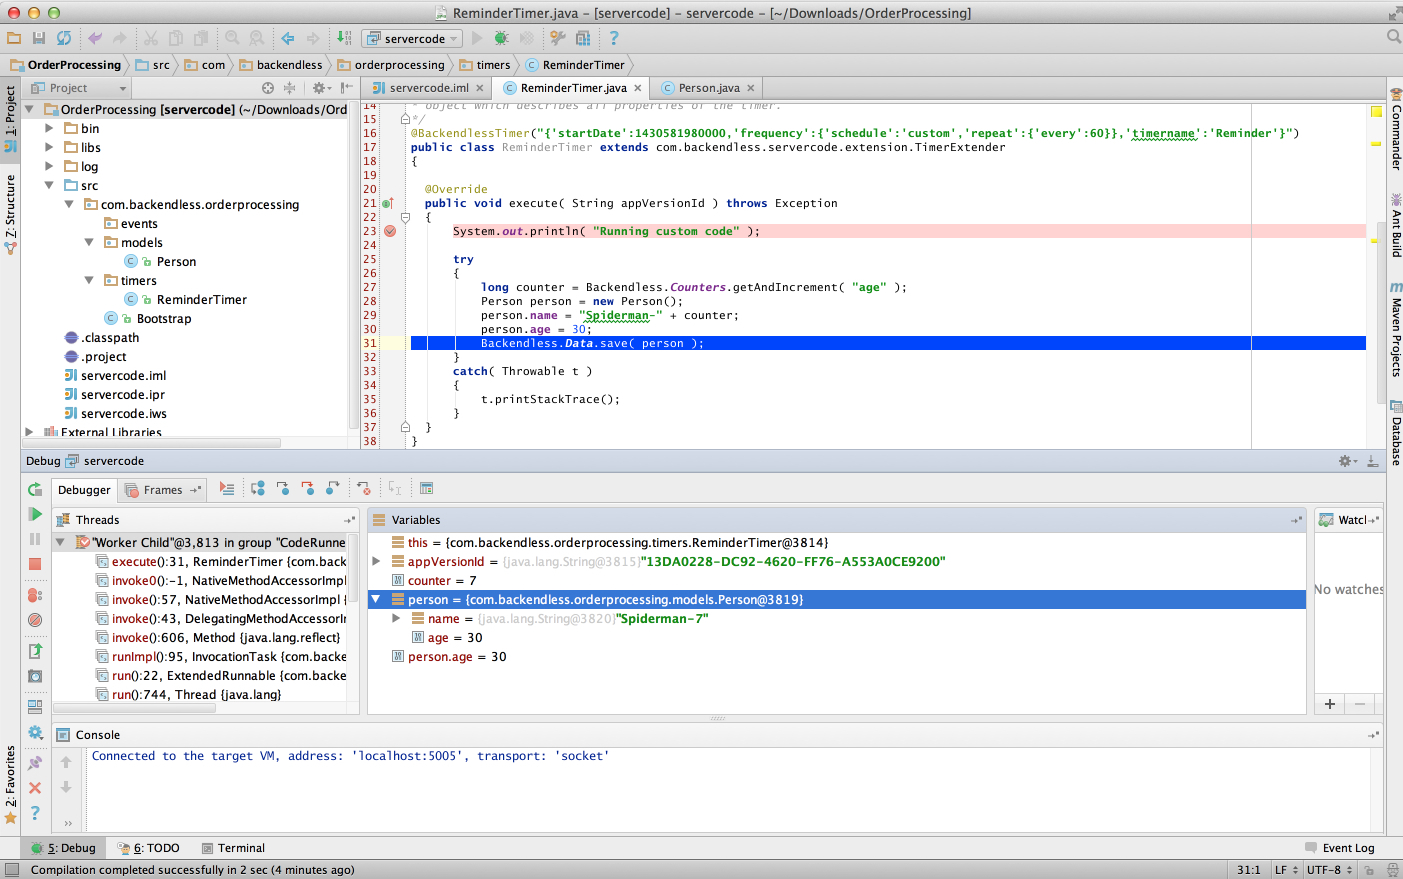 coderrunner debugger1 - Feature 112: Local debugging of Backendless Timers on a developer machine